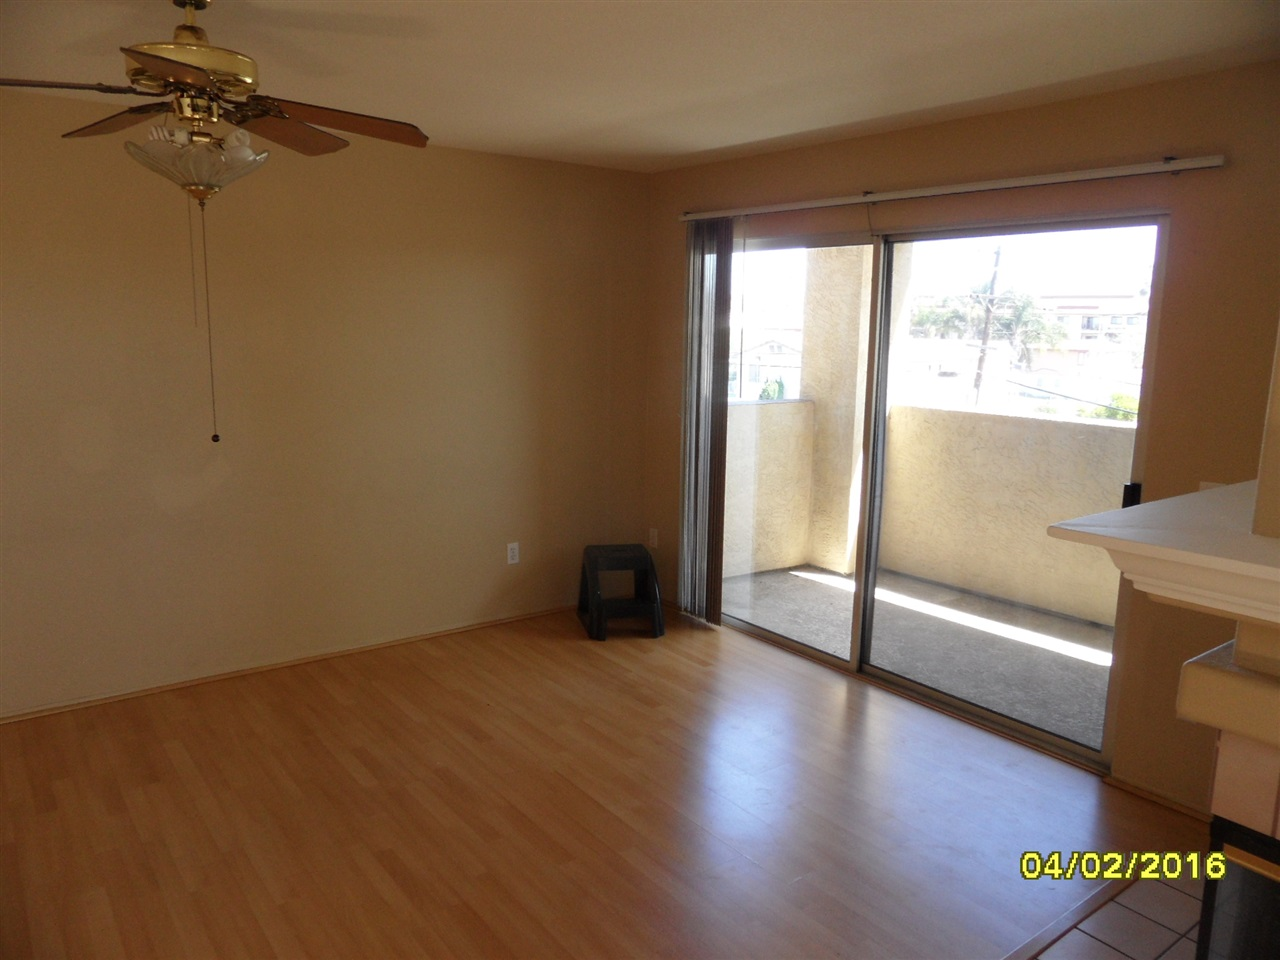 Photo 4: LINDA VISTA Condo for sale : 3 bedrooms : 2012 Coolidge St #93 in San Diego